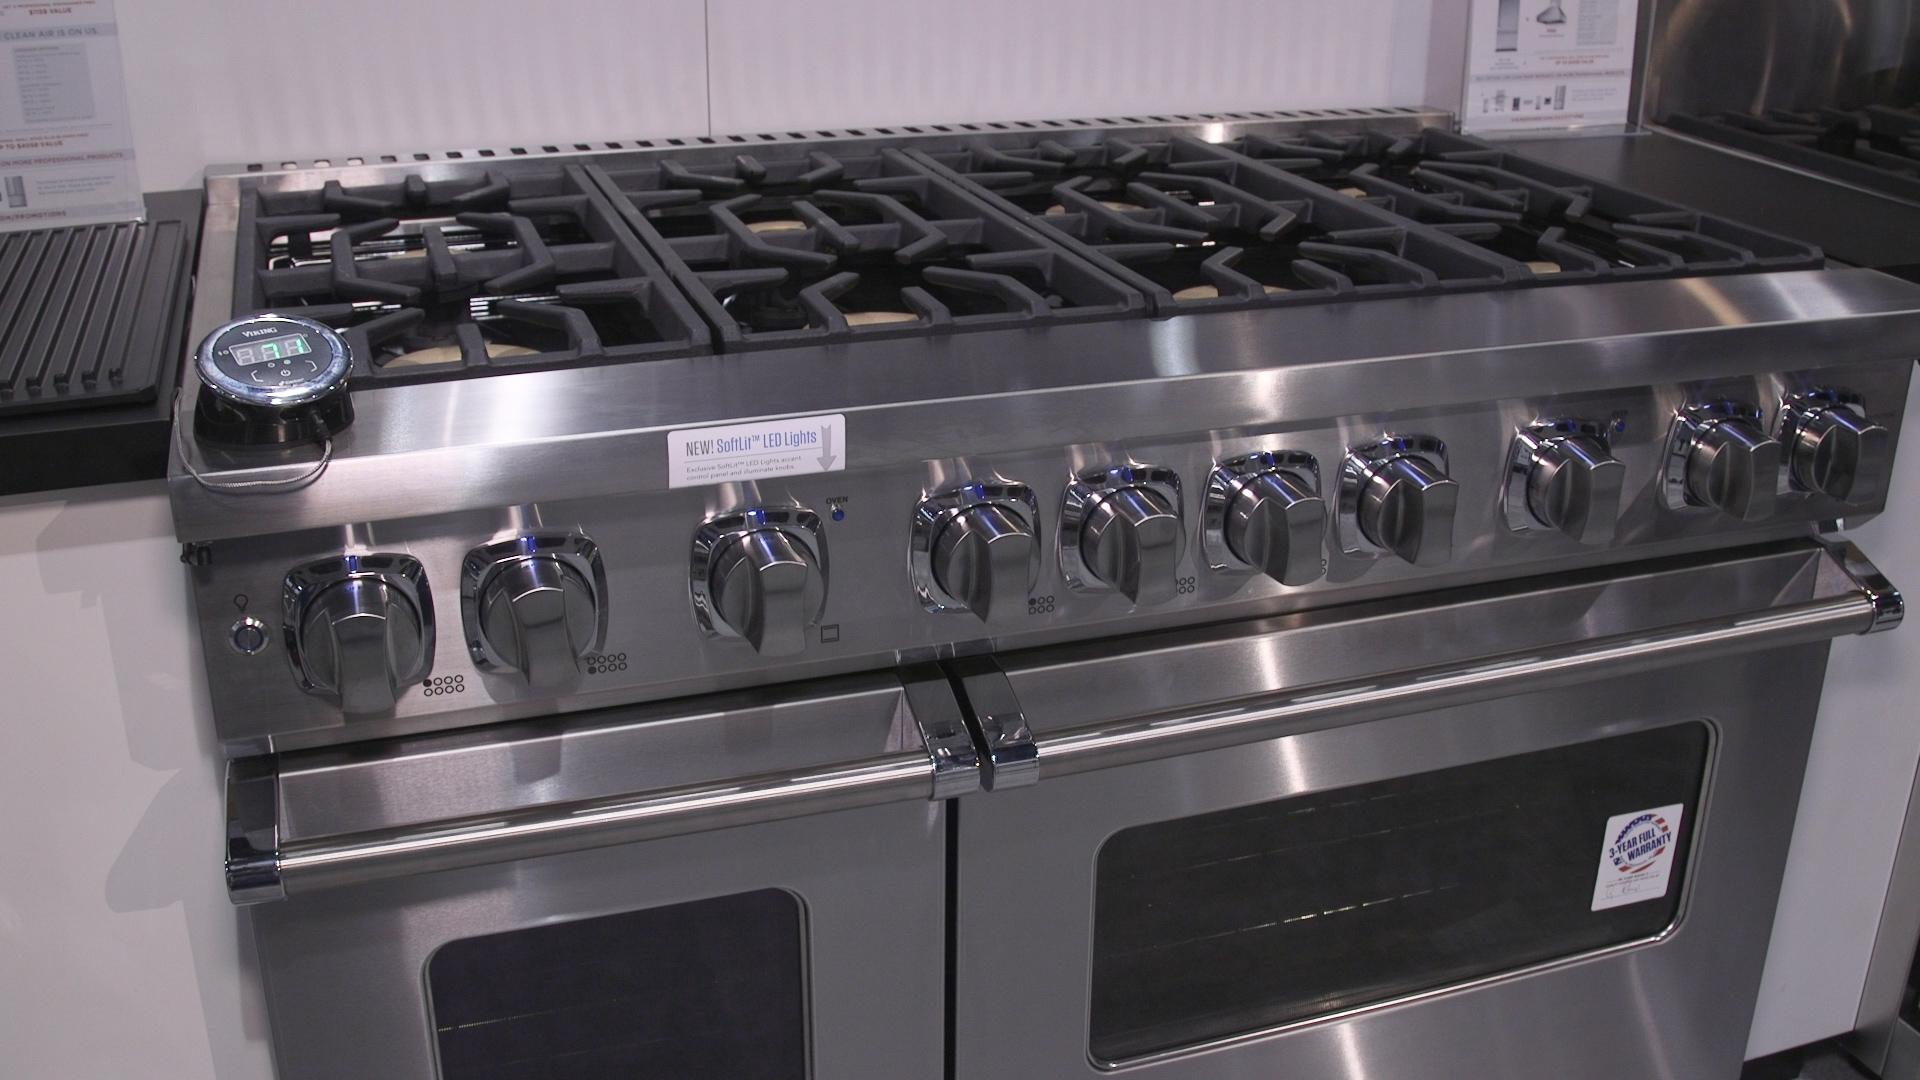 stove kitchen industrial faucet best range buying guide consumer reports